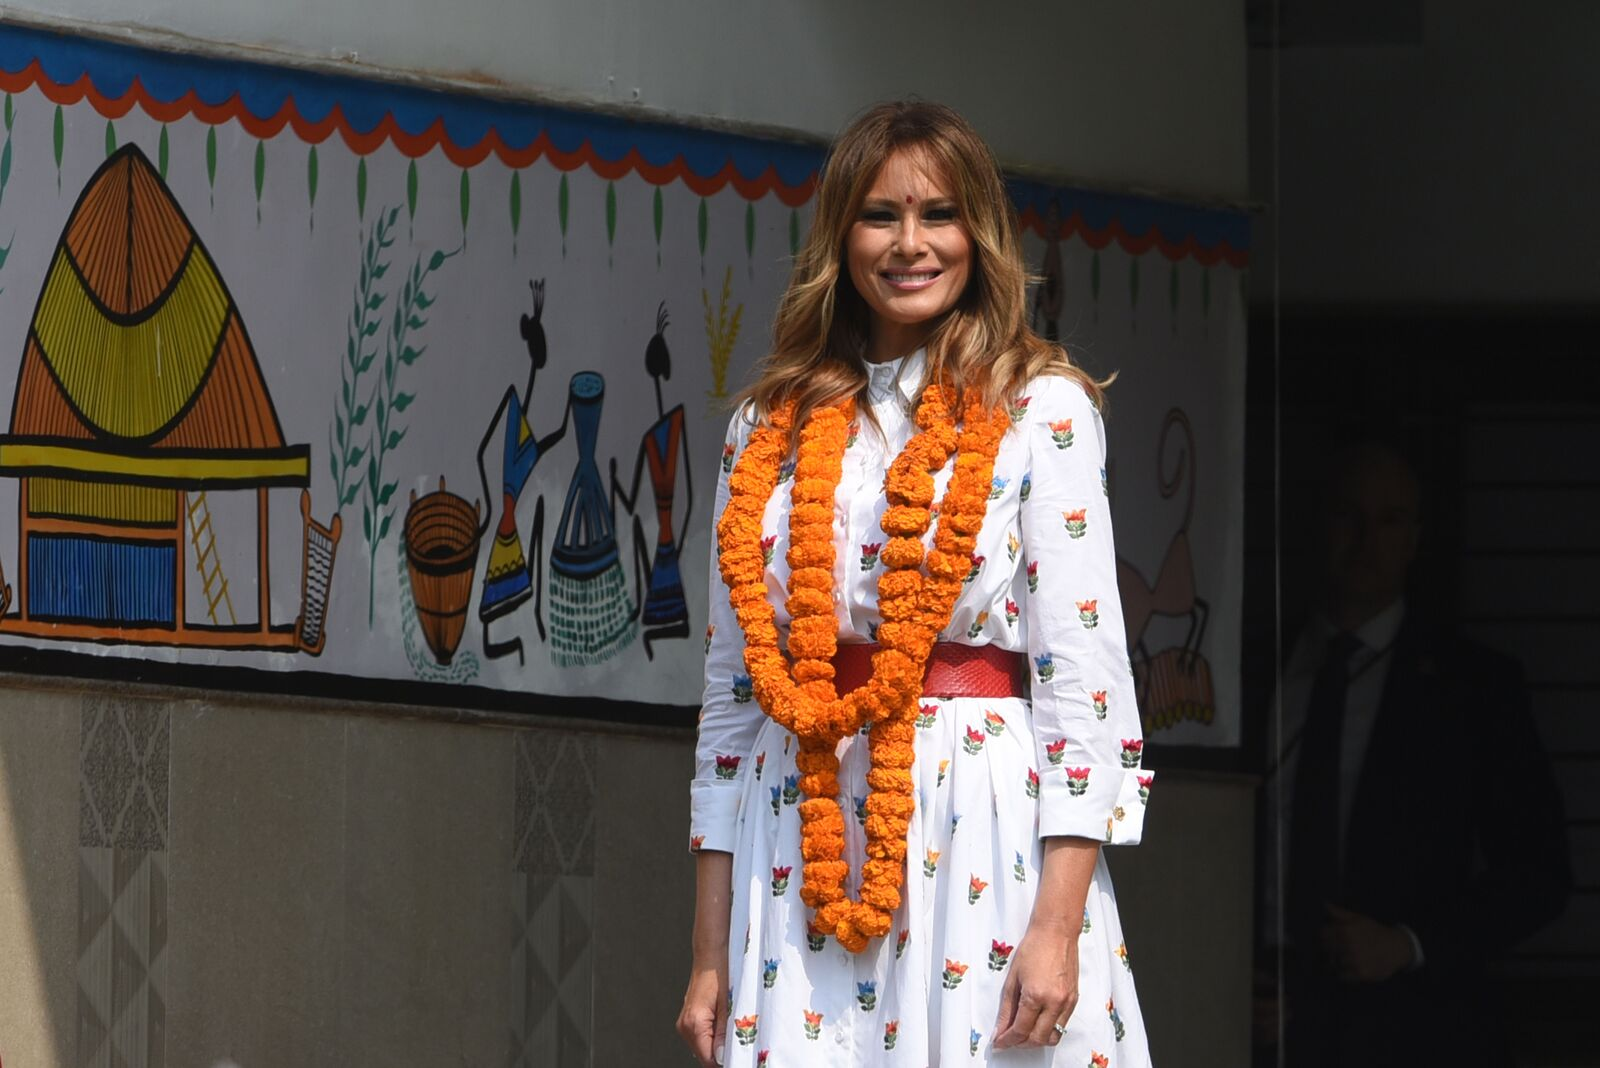 Melania Trump during an interaction with students of Sarvodaya Co-Educational Senior Secondary School at Moti Bagh on February 25, 2020, in New Delhi, India | Photo: Sanchit Khanna/Hindustan Times/Getty Images